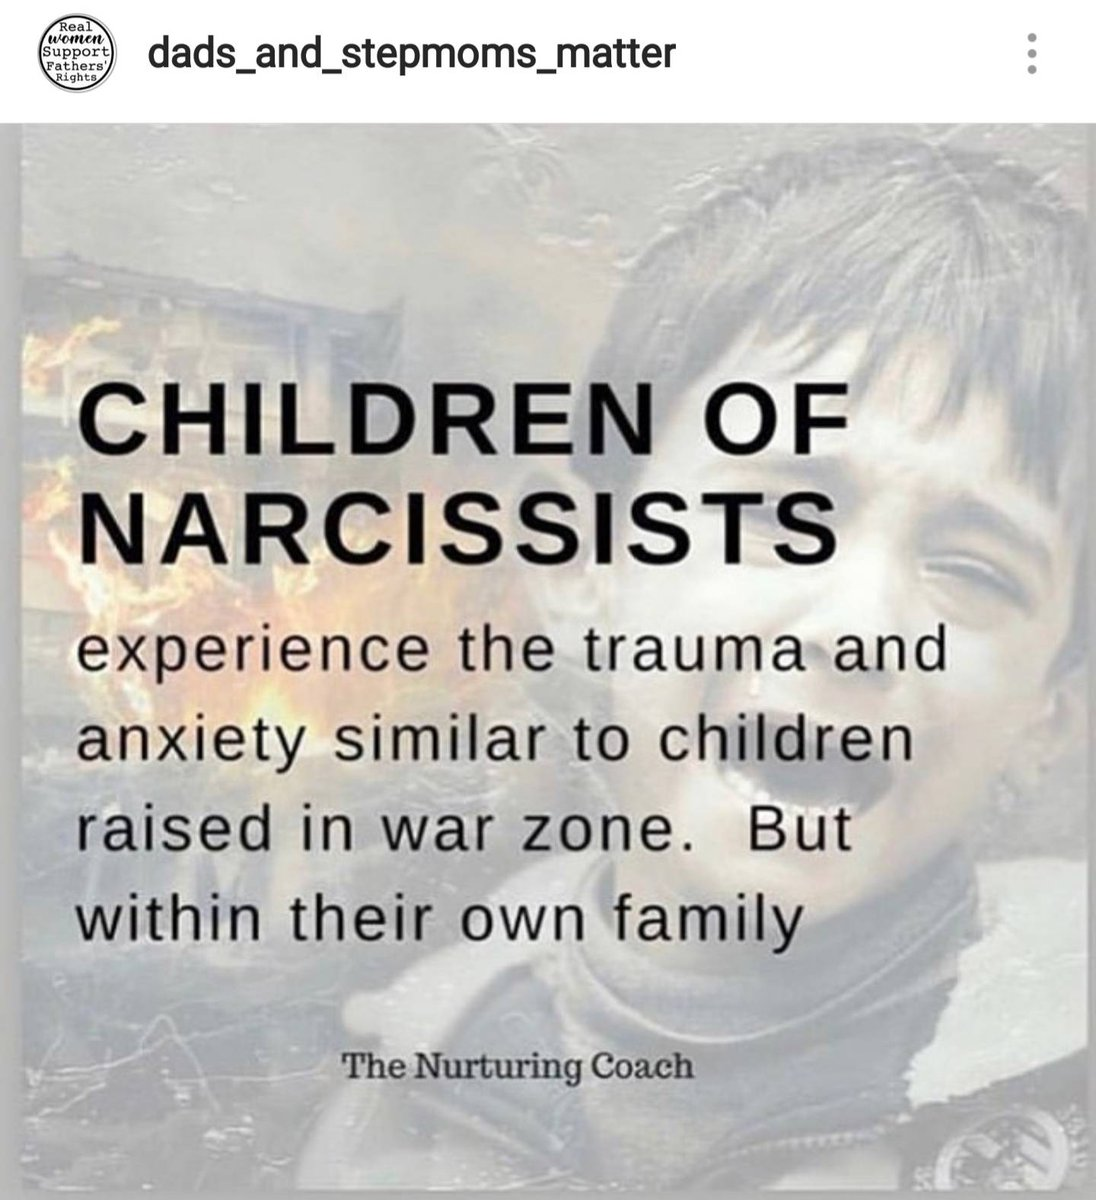 NarcissisticParents hashtag on Twitter